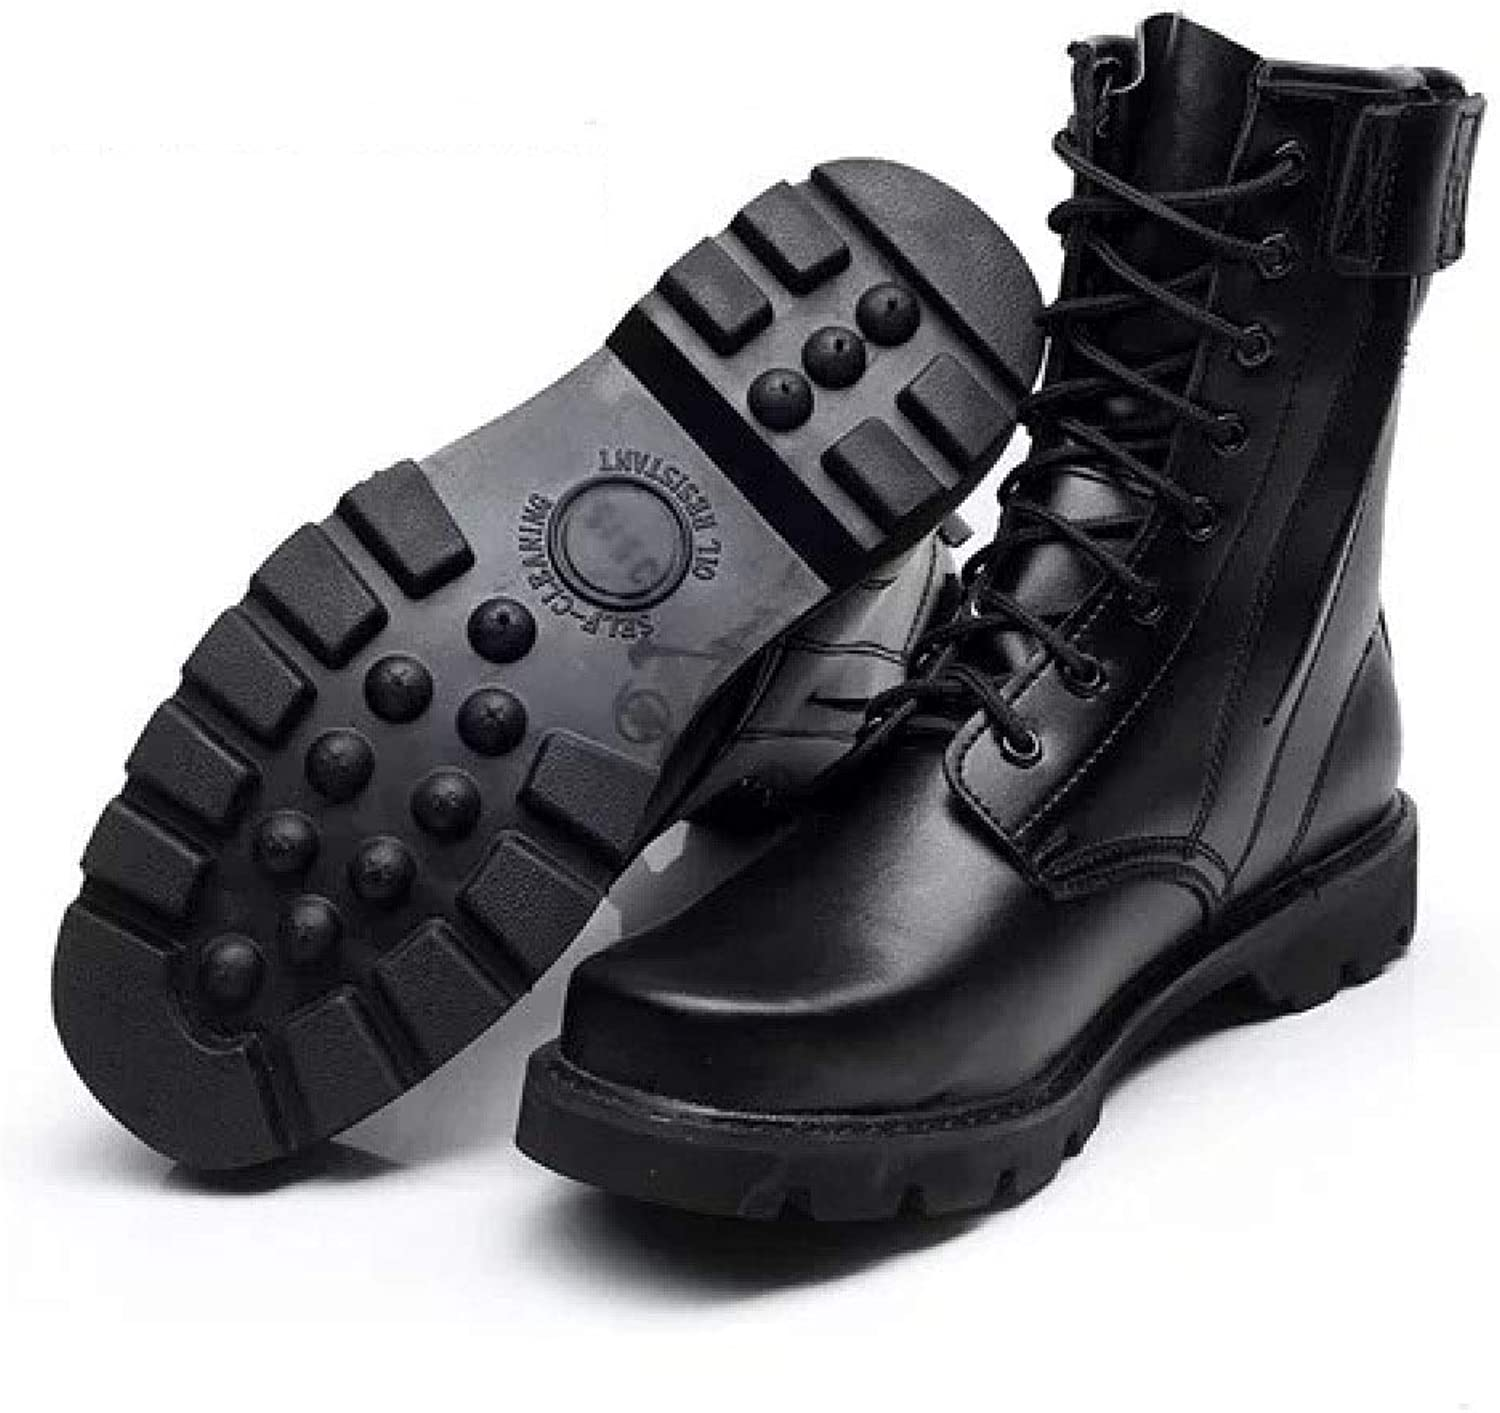 Hiking Boots Men's Special Forces Combat Boots High To Help Security shoes Martin Outdoor Military shoes Men's shoes